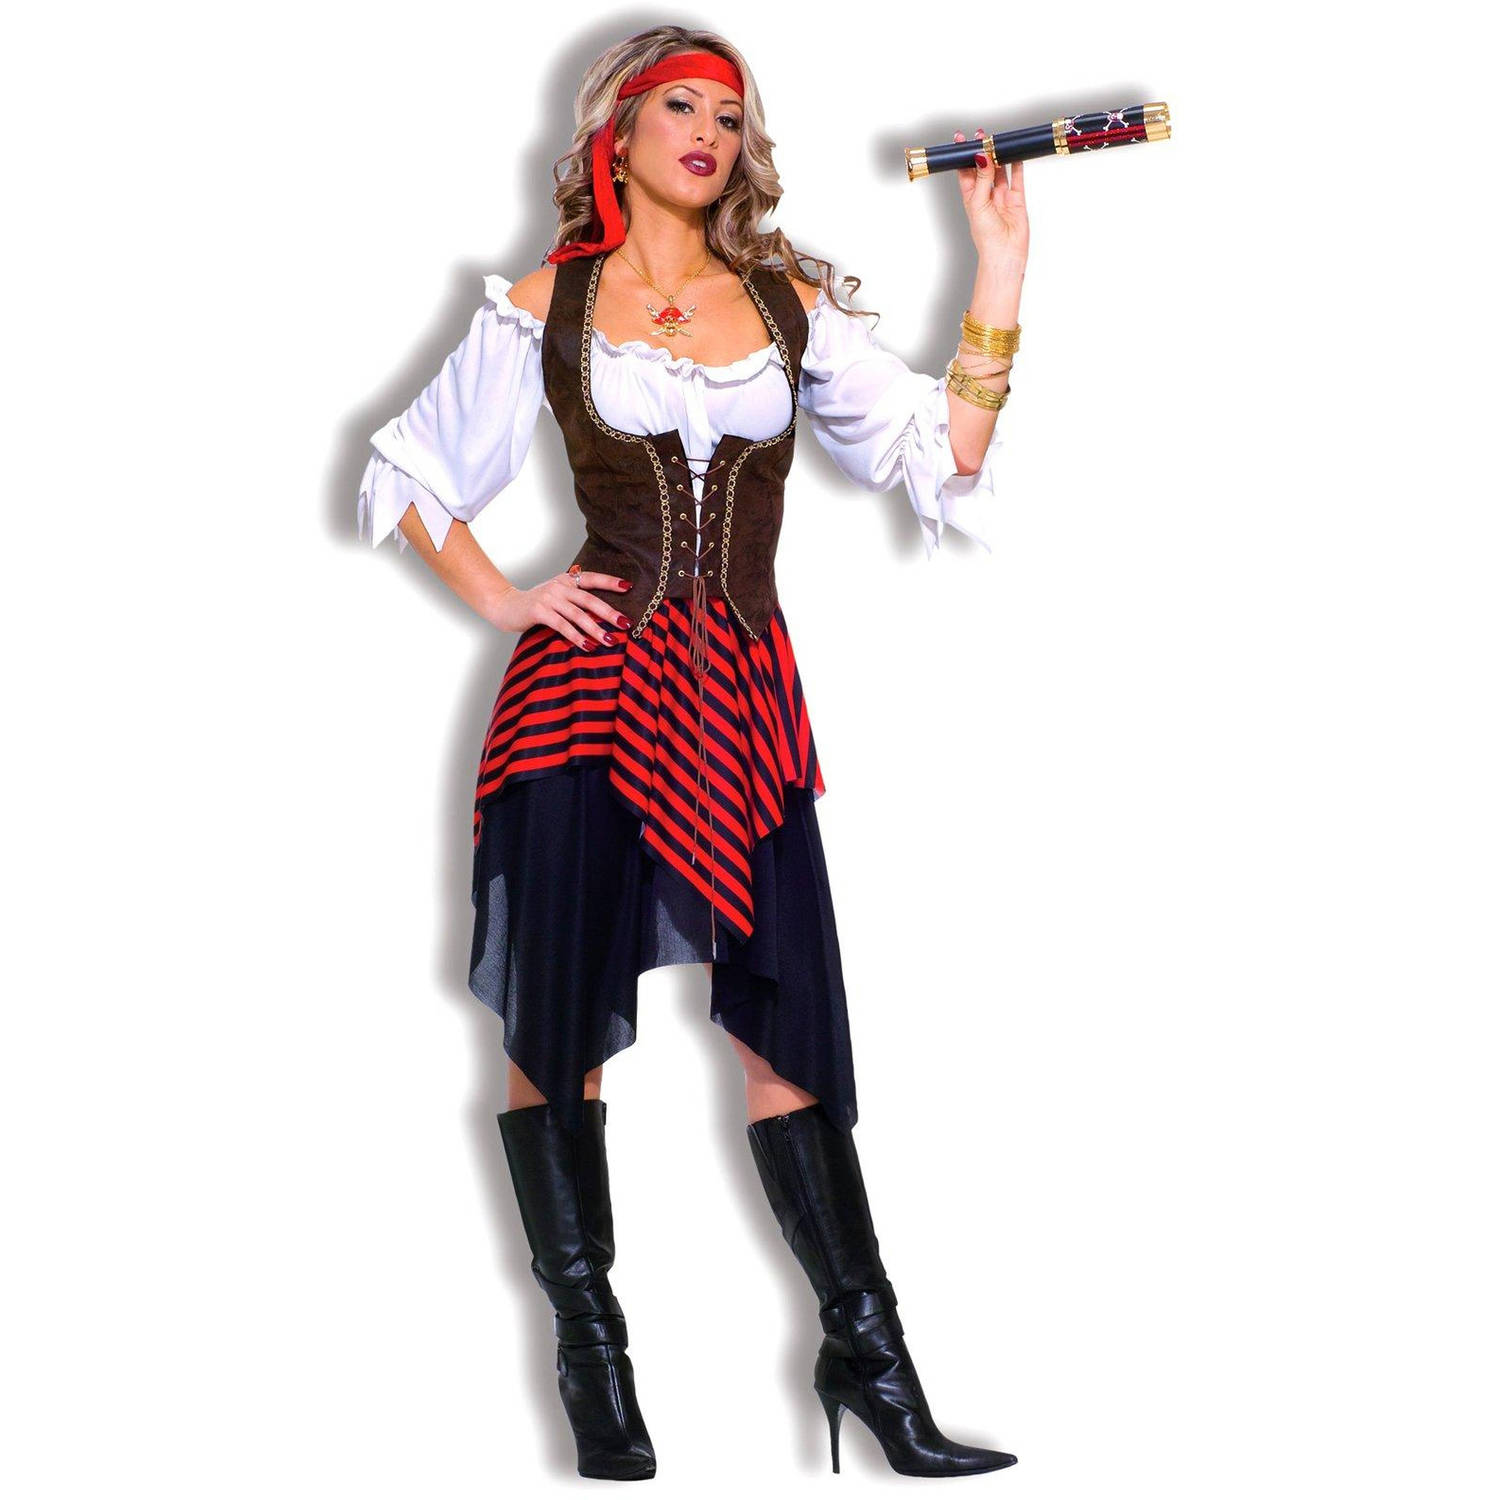 Sweet Buccaneer Women's Adult Halloween Costume, 1 Size